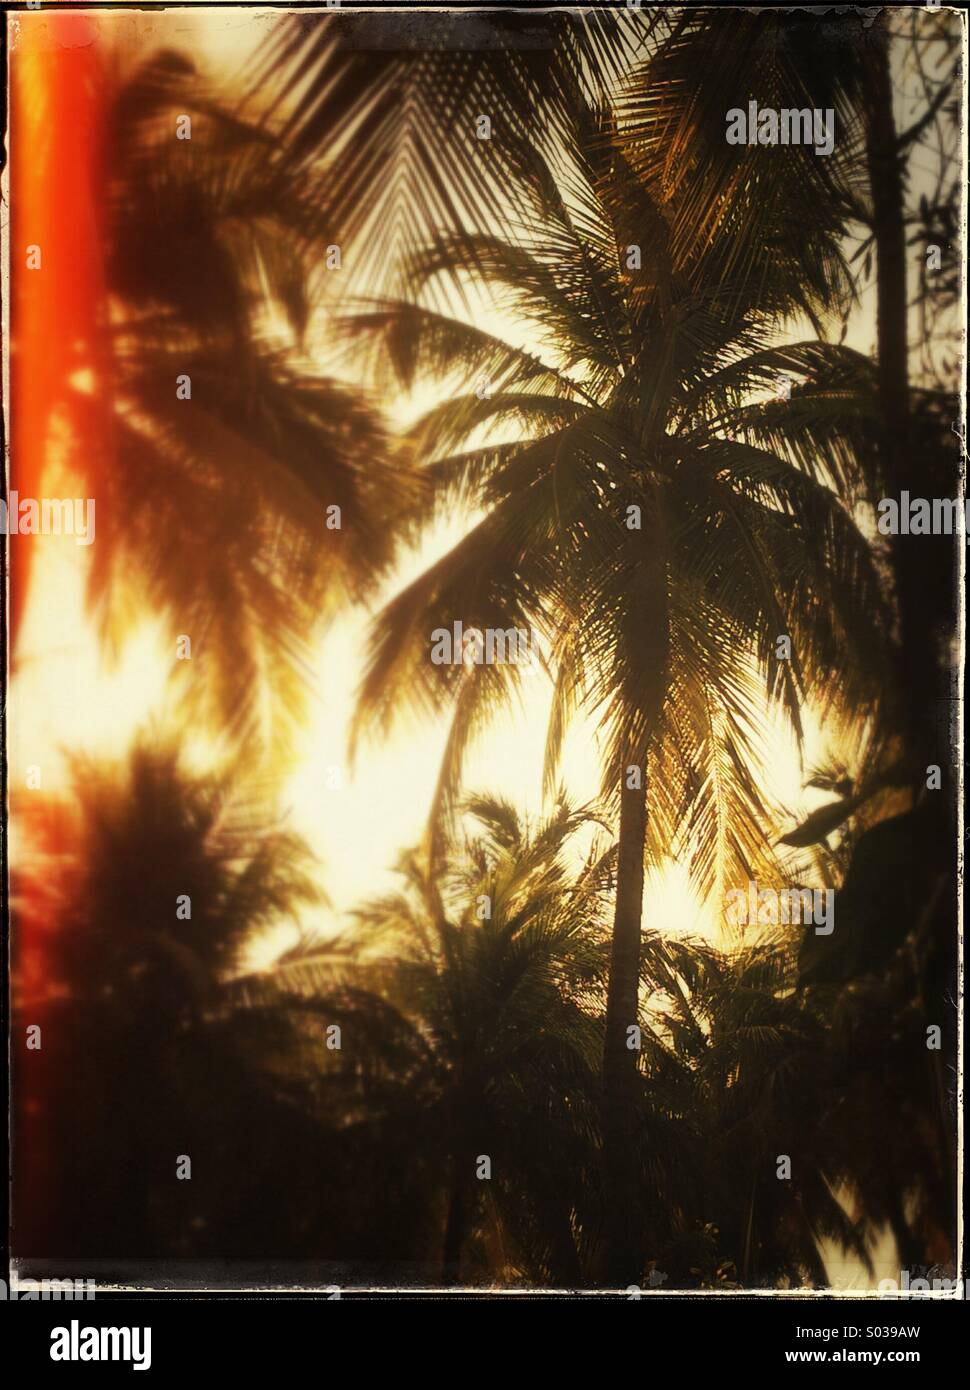 Palm trees and sunset - Stock Image